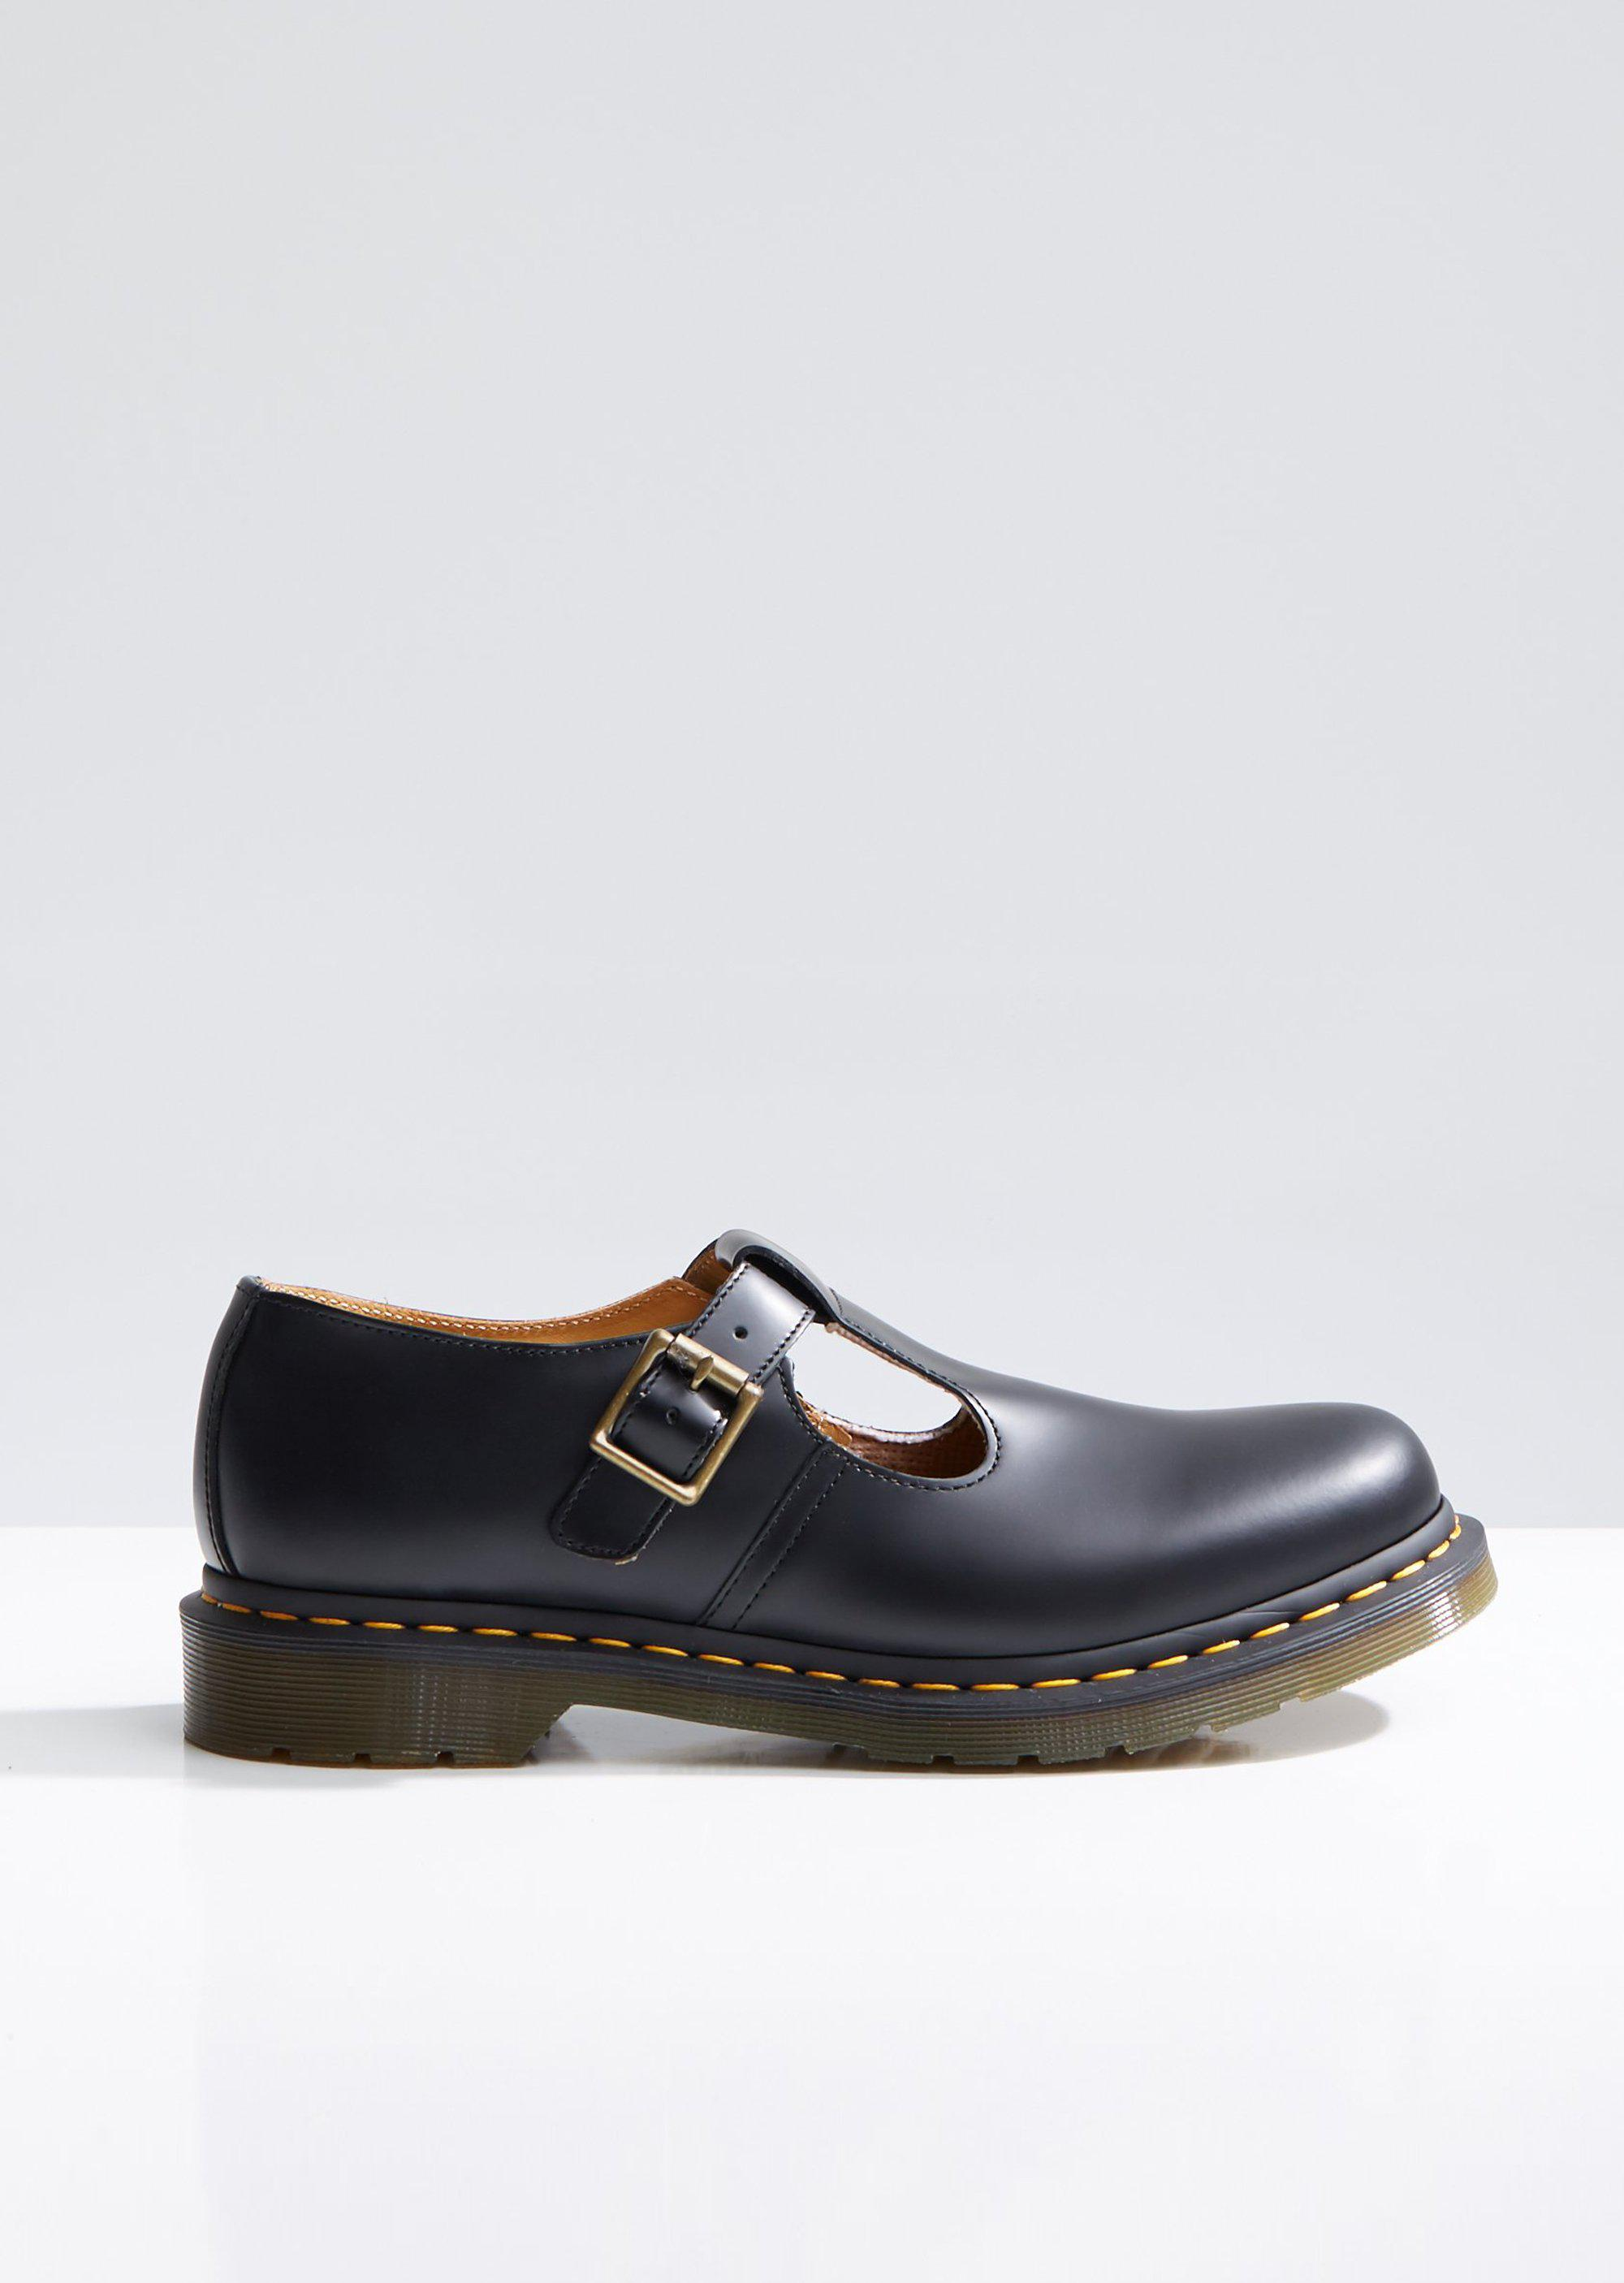 5de65aa77aa Dr. Martens Polley T Bar Mary Janes in Black - Lyst